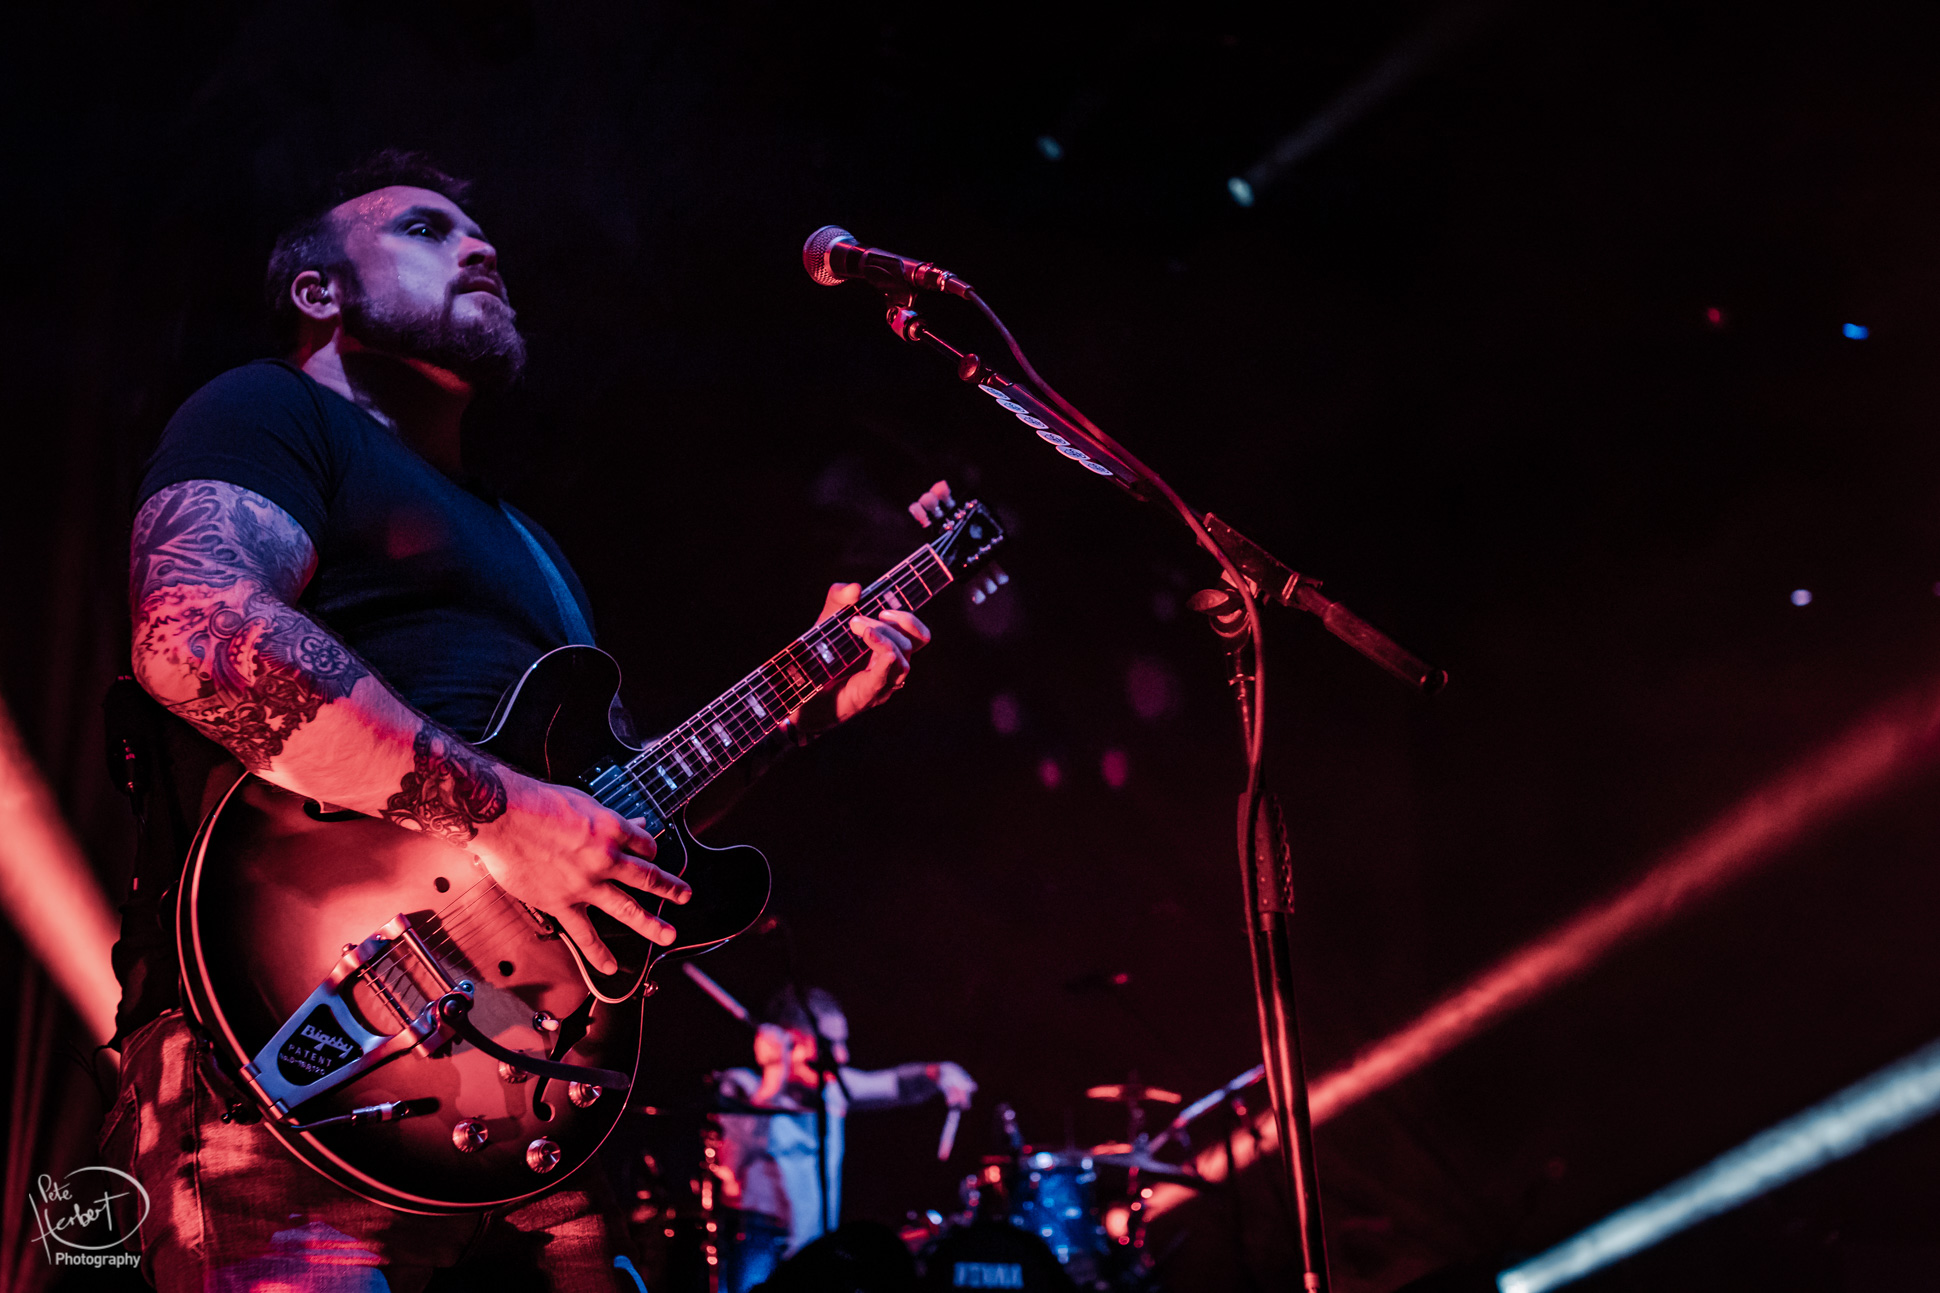 Coheed & Cambria - The Roundhouse - 16.10.18 - London-10.JPG